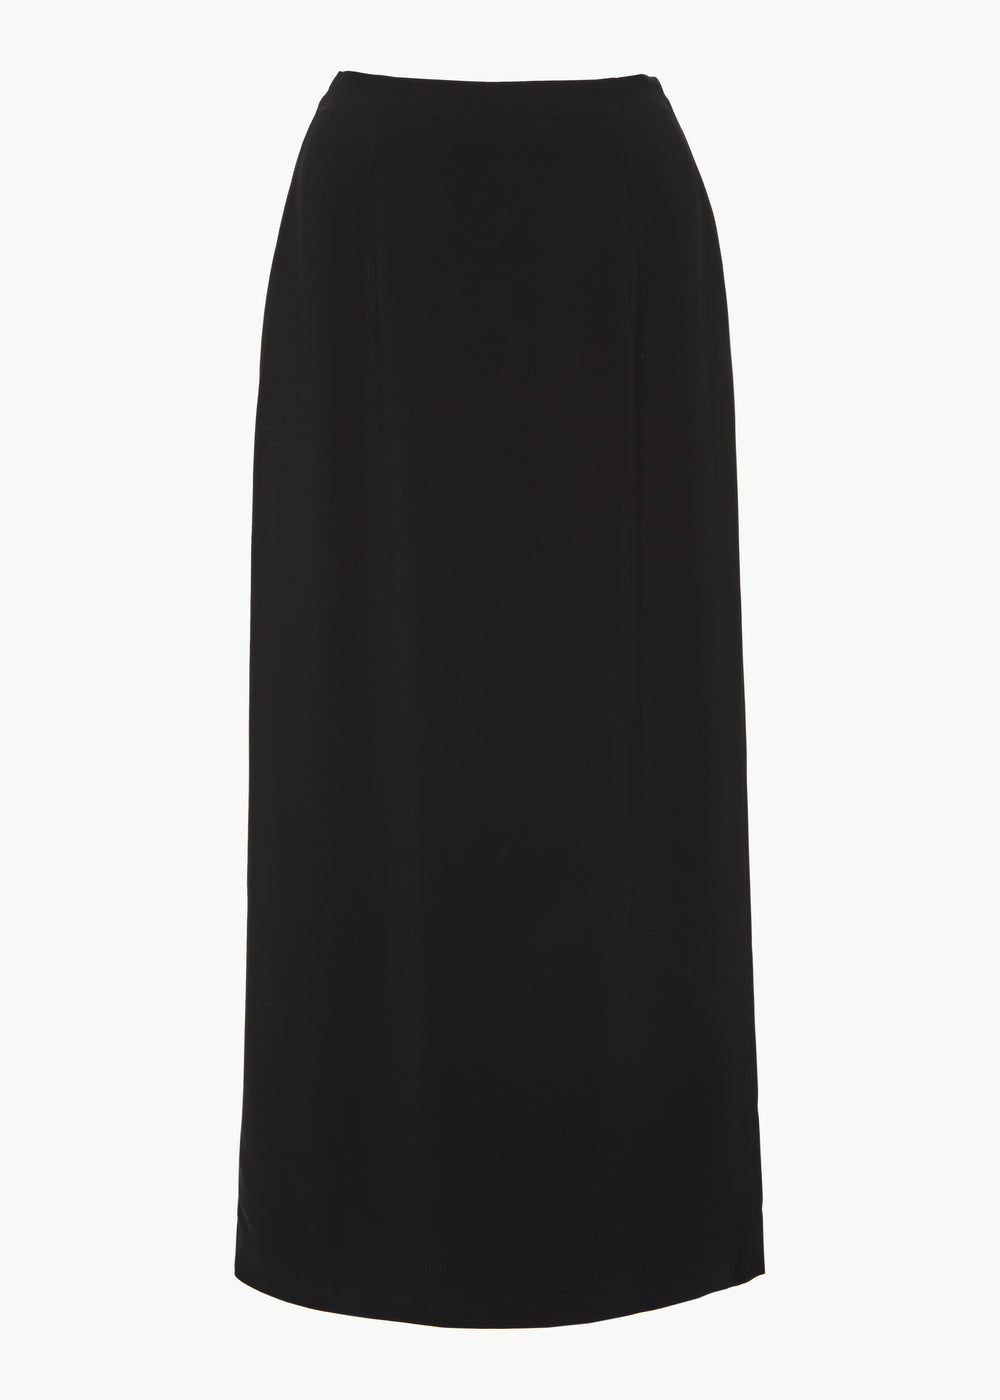 Slim Skirt in Stretch Crepe - Black - CO